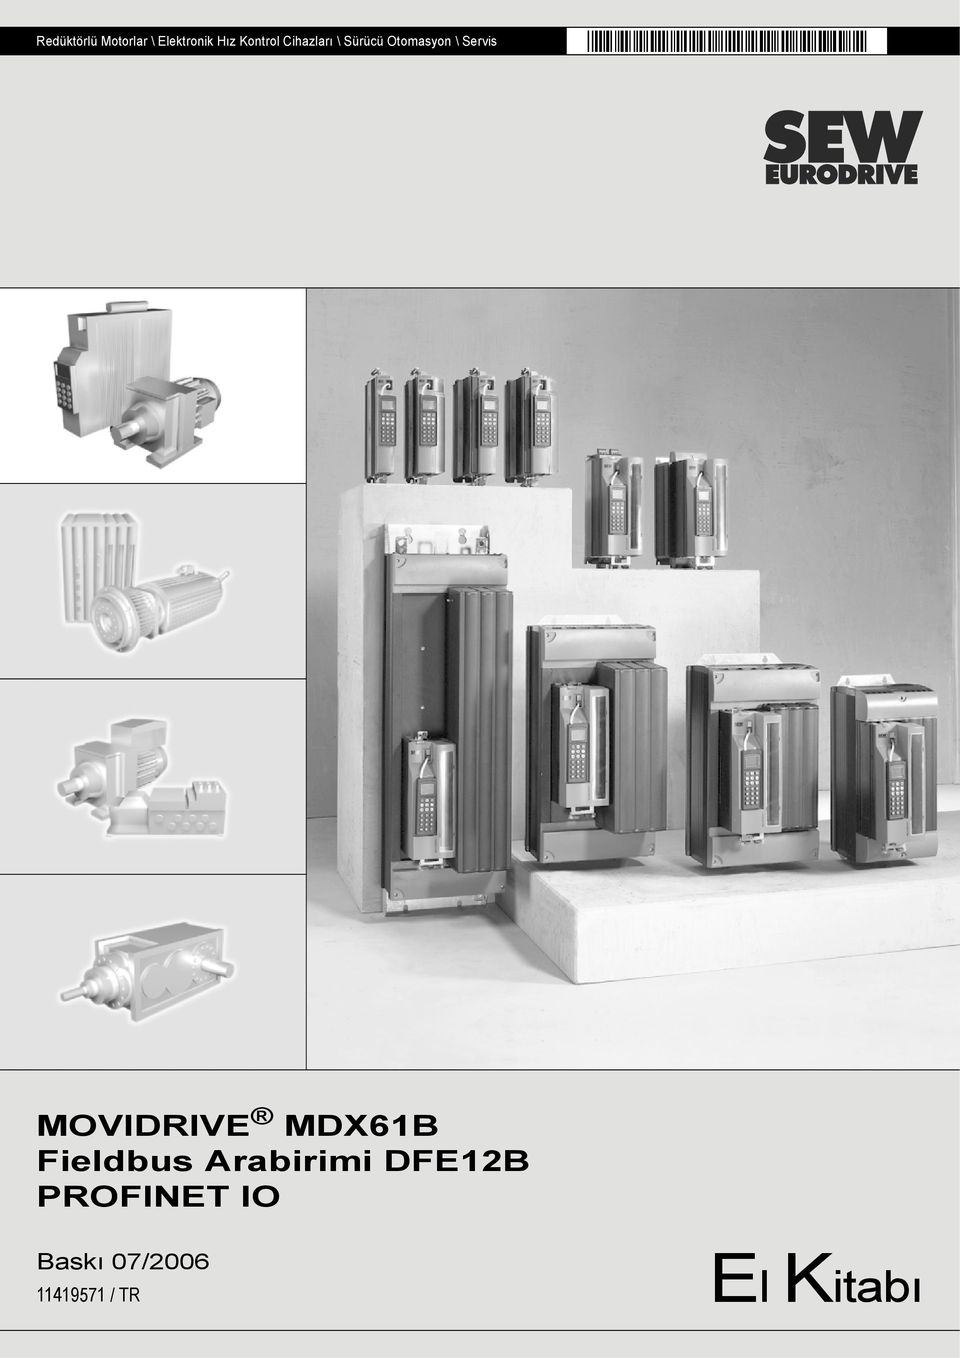 MOVIDRIVE MDX61B Fieldbus Arabirimi